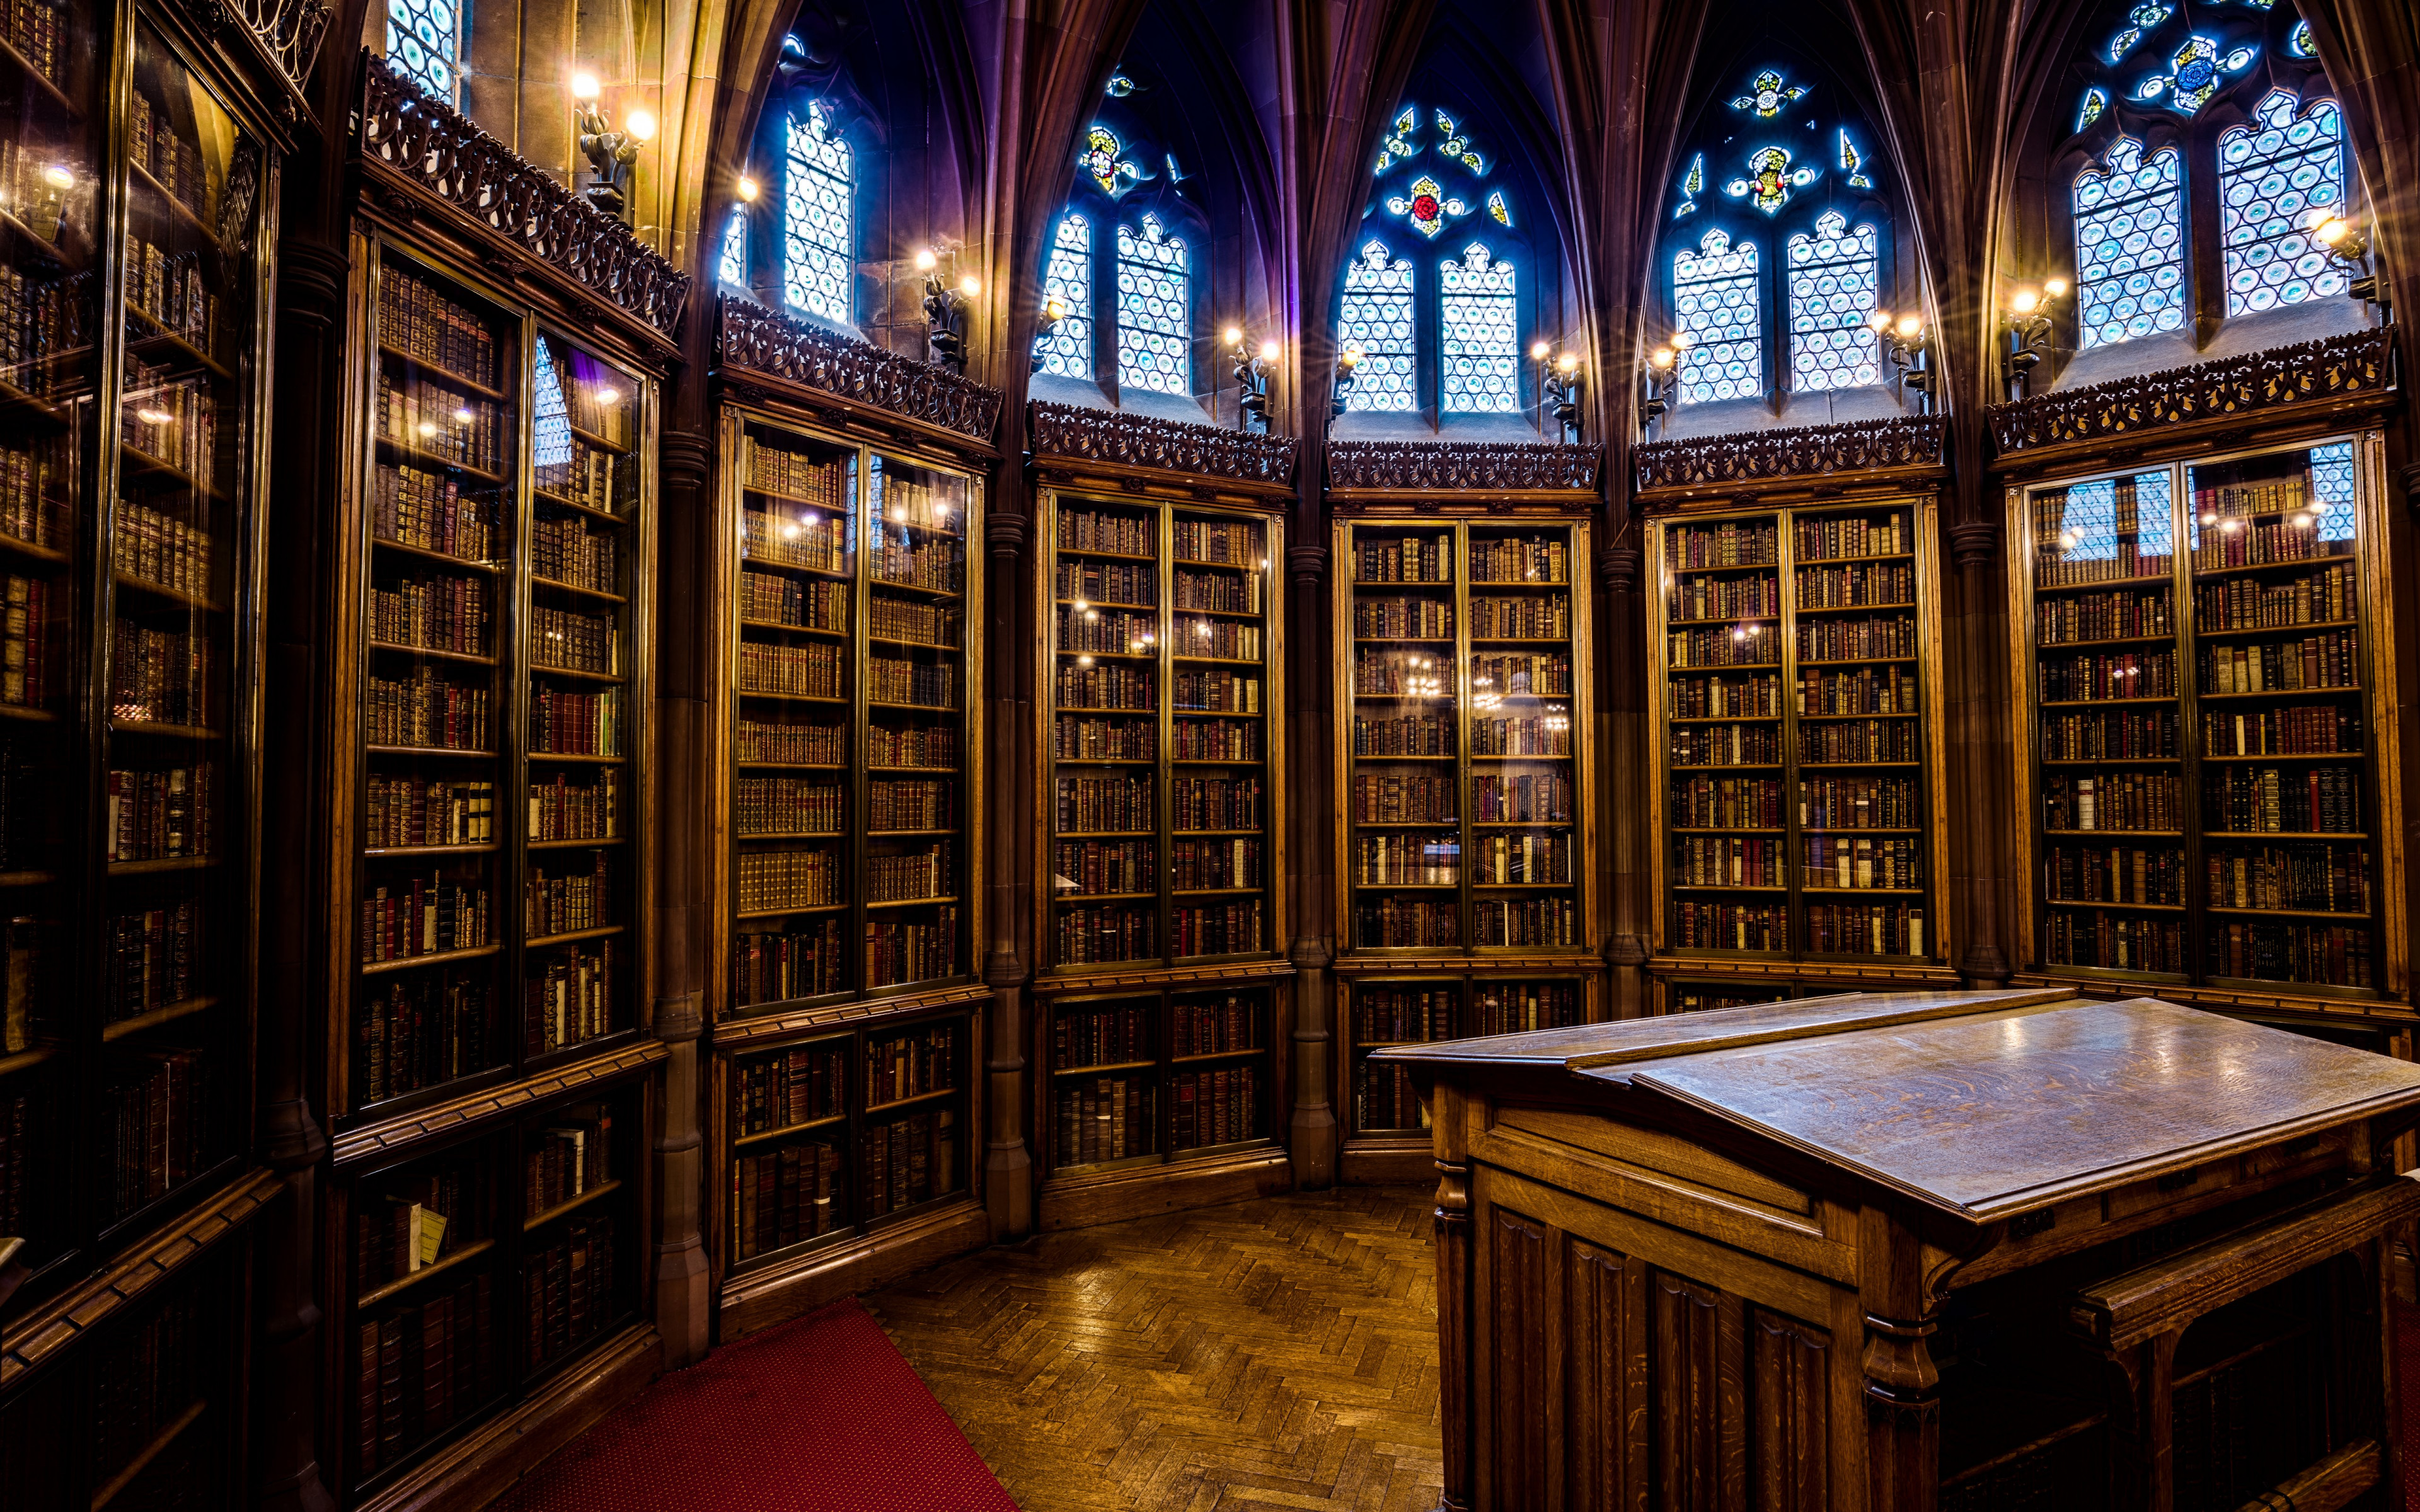 The Interior of John Rylands library wallpaper 3840x2400